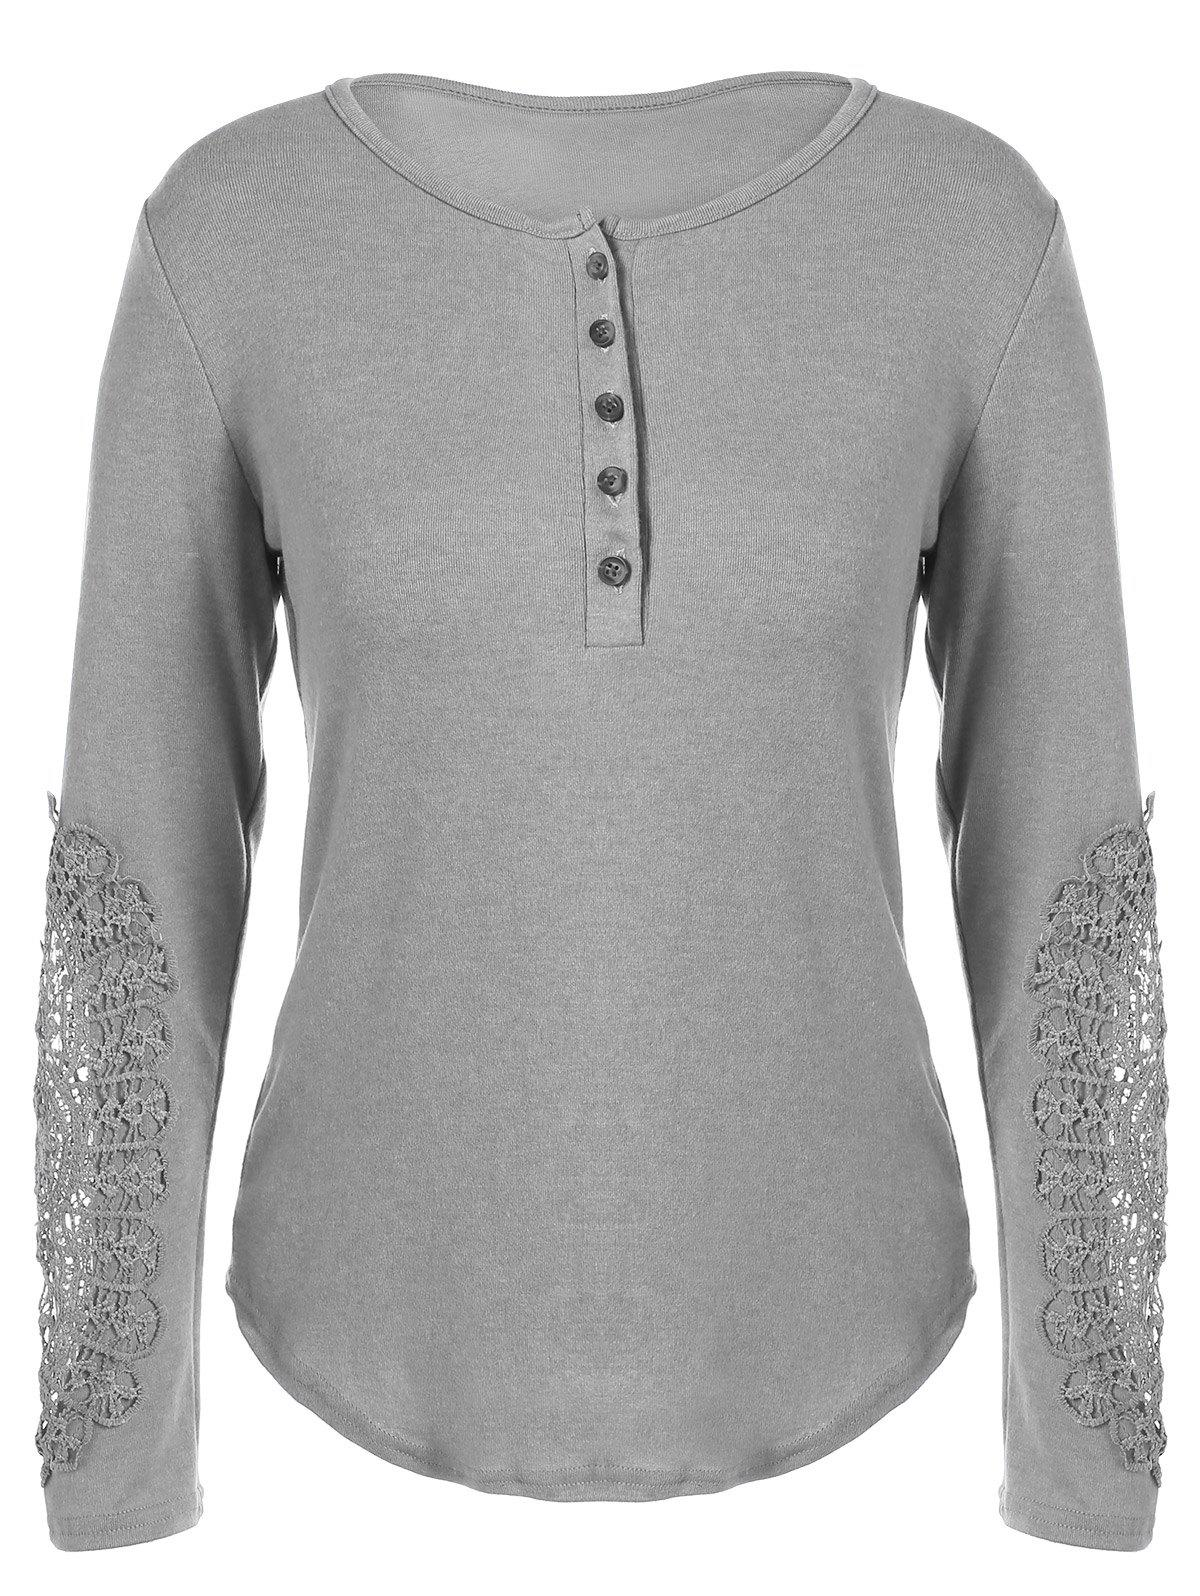 Discount Concise Openwork Lace Buttons T-Shirt